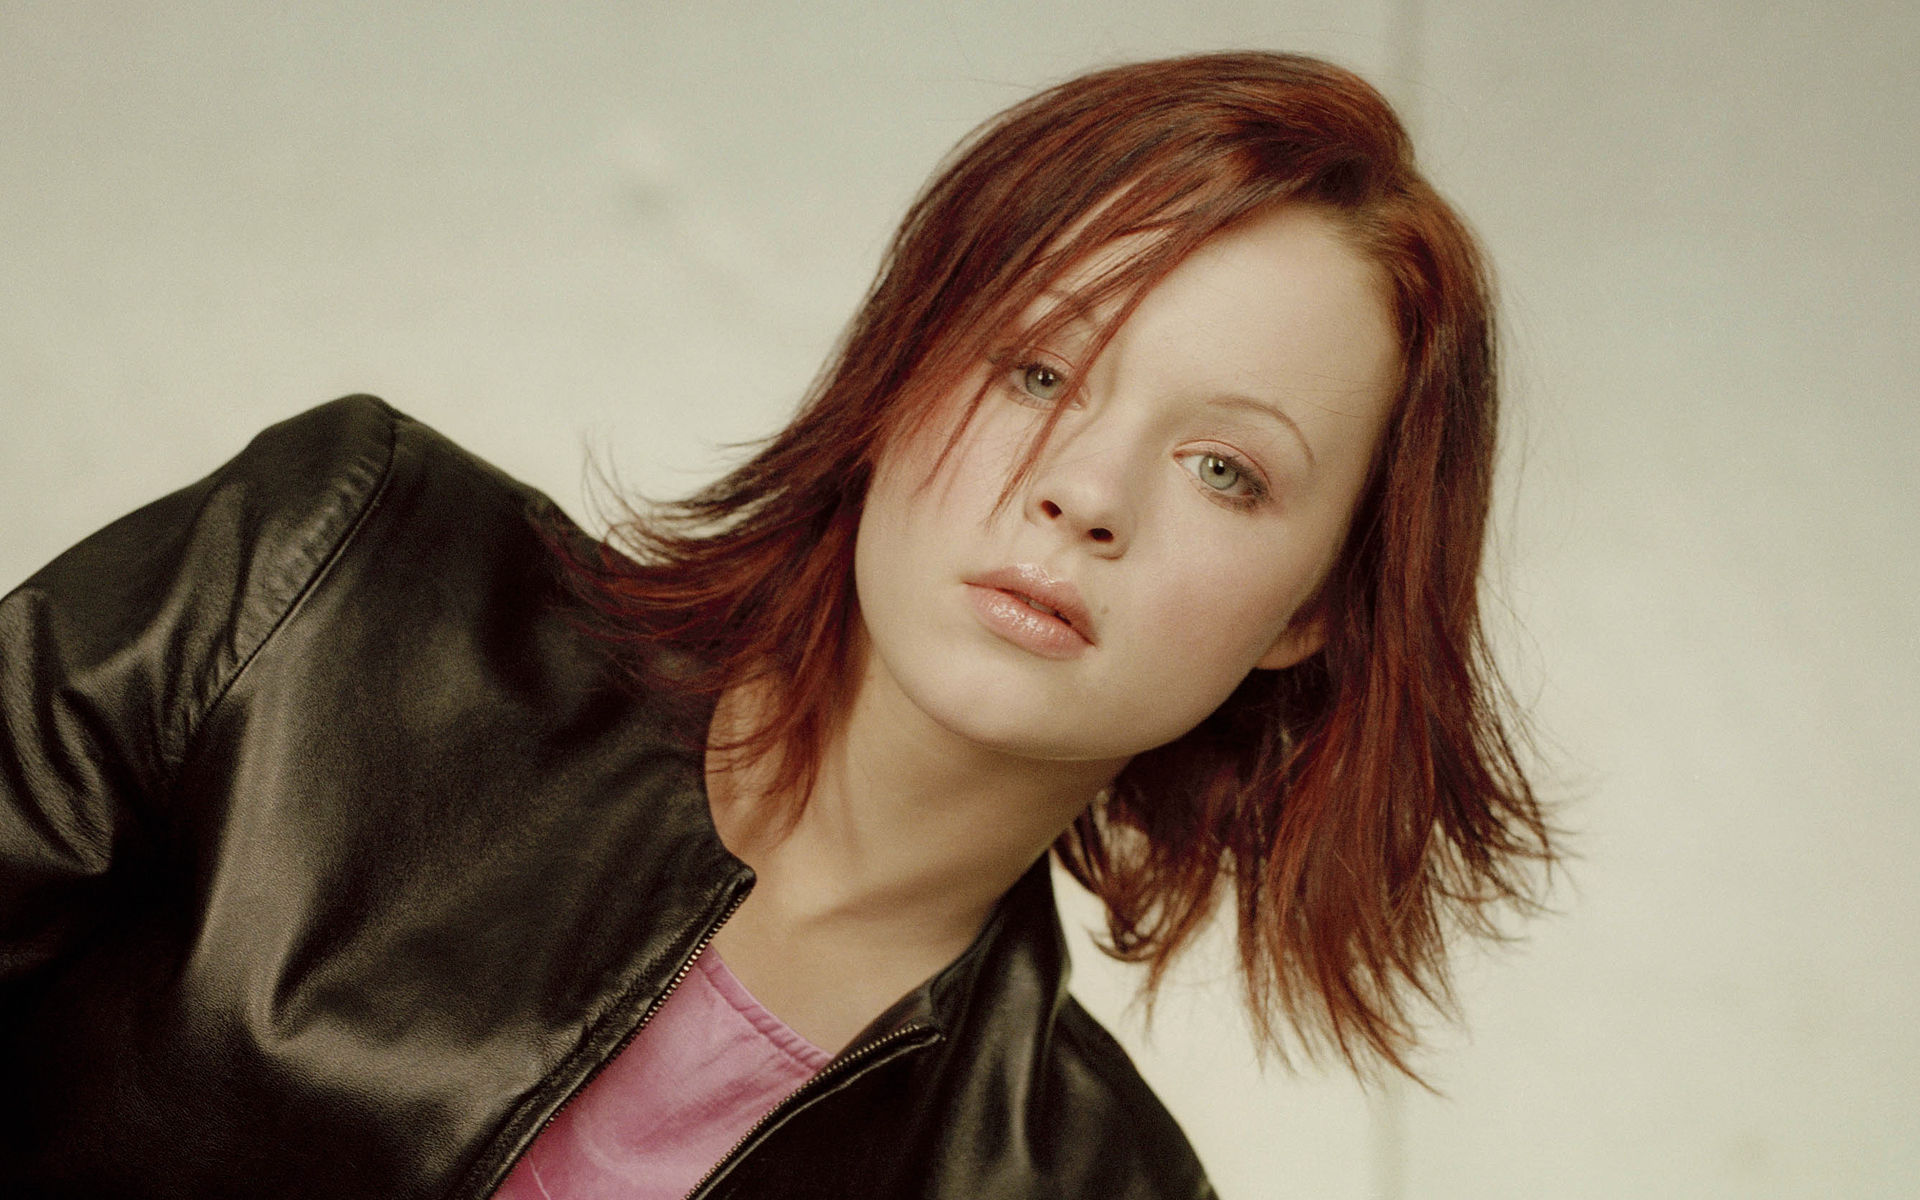 Thora Birch HD Wallpaper | Thora Birch Images | Cool Wallpapers 762